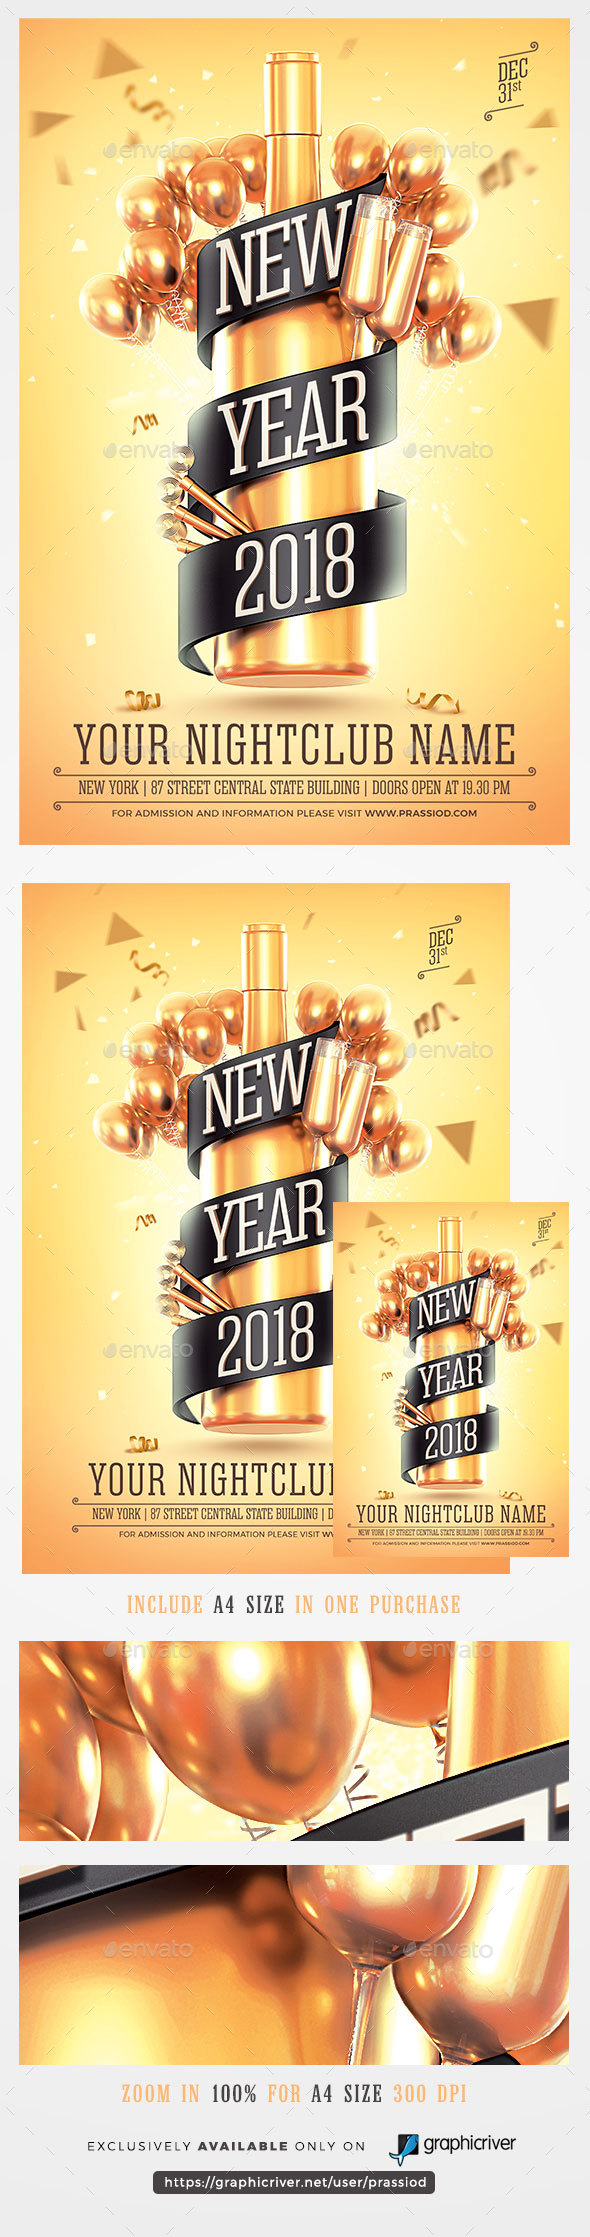 GraphicRiver New Year 2018 Flyer Template 21031947